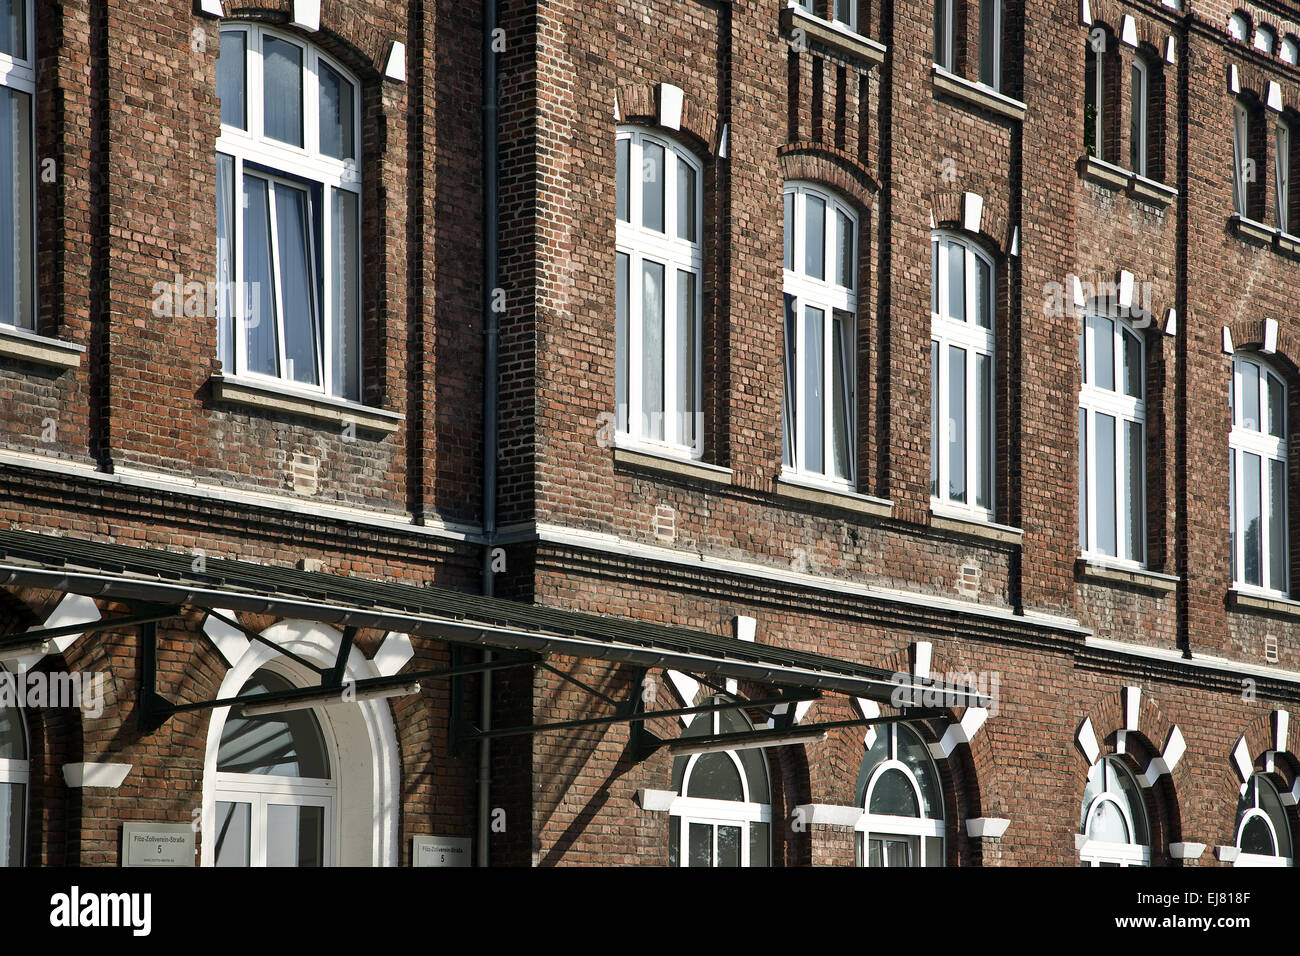 Detail Werne colliery, Werne, Germany - Stock Image